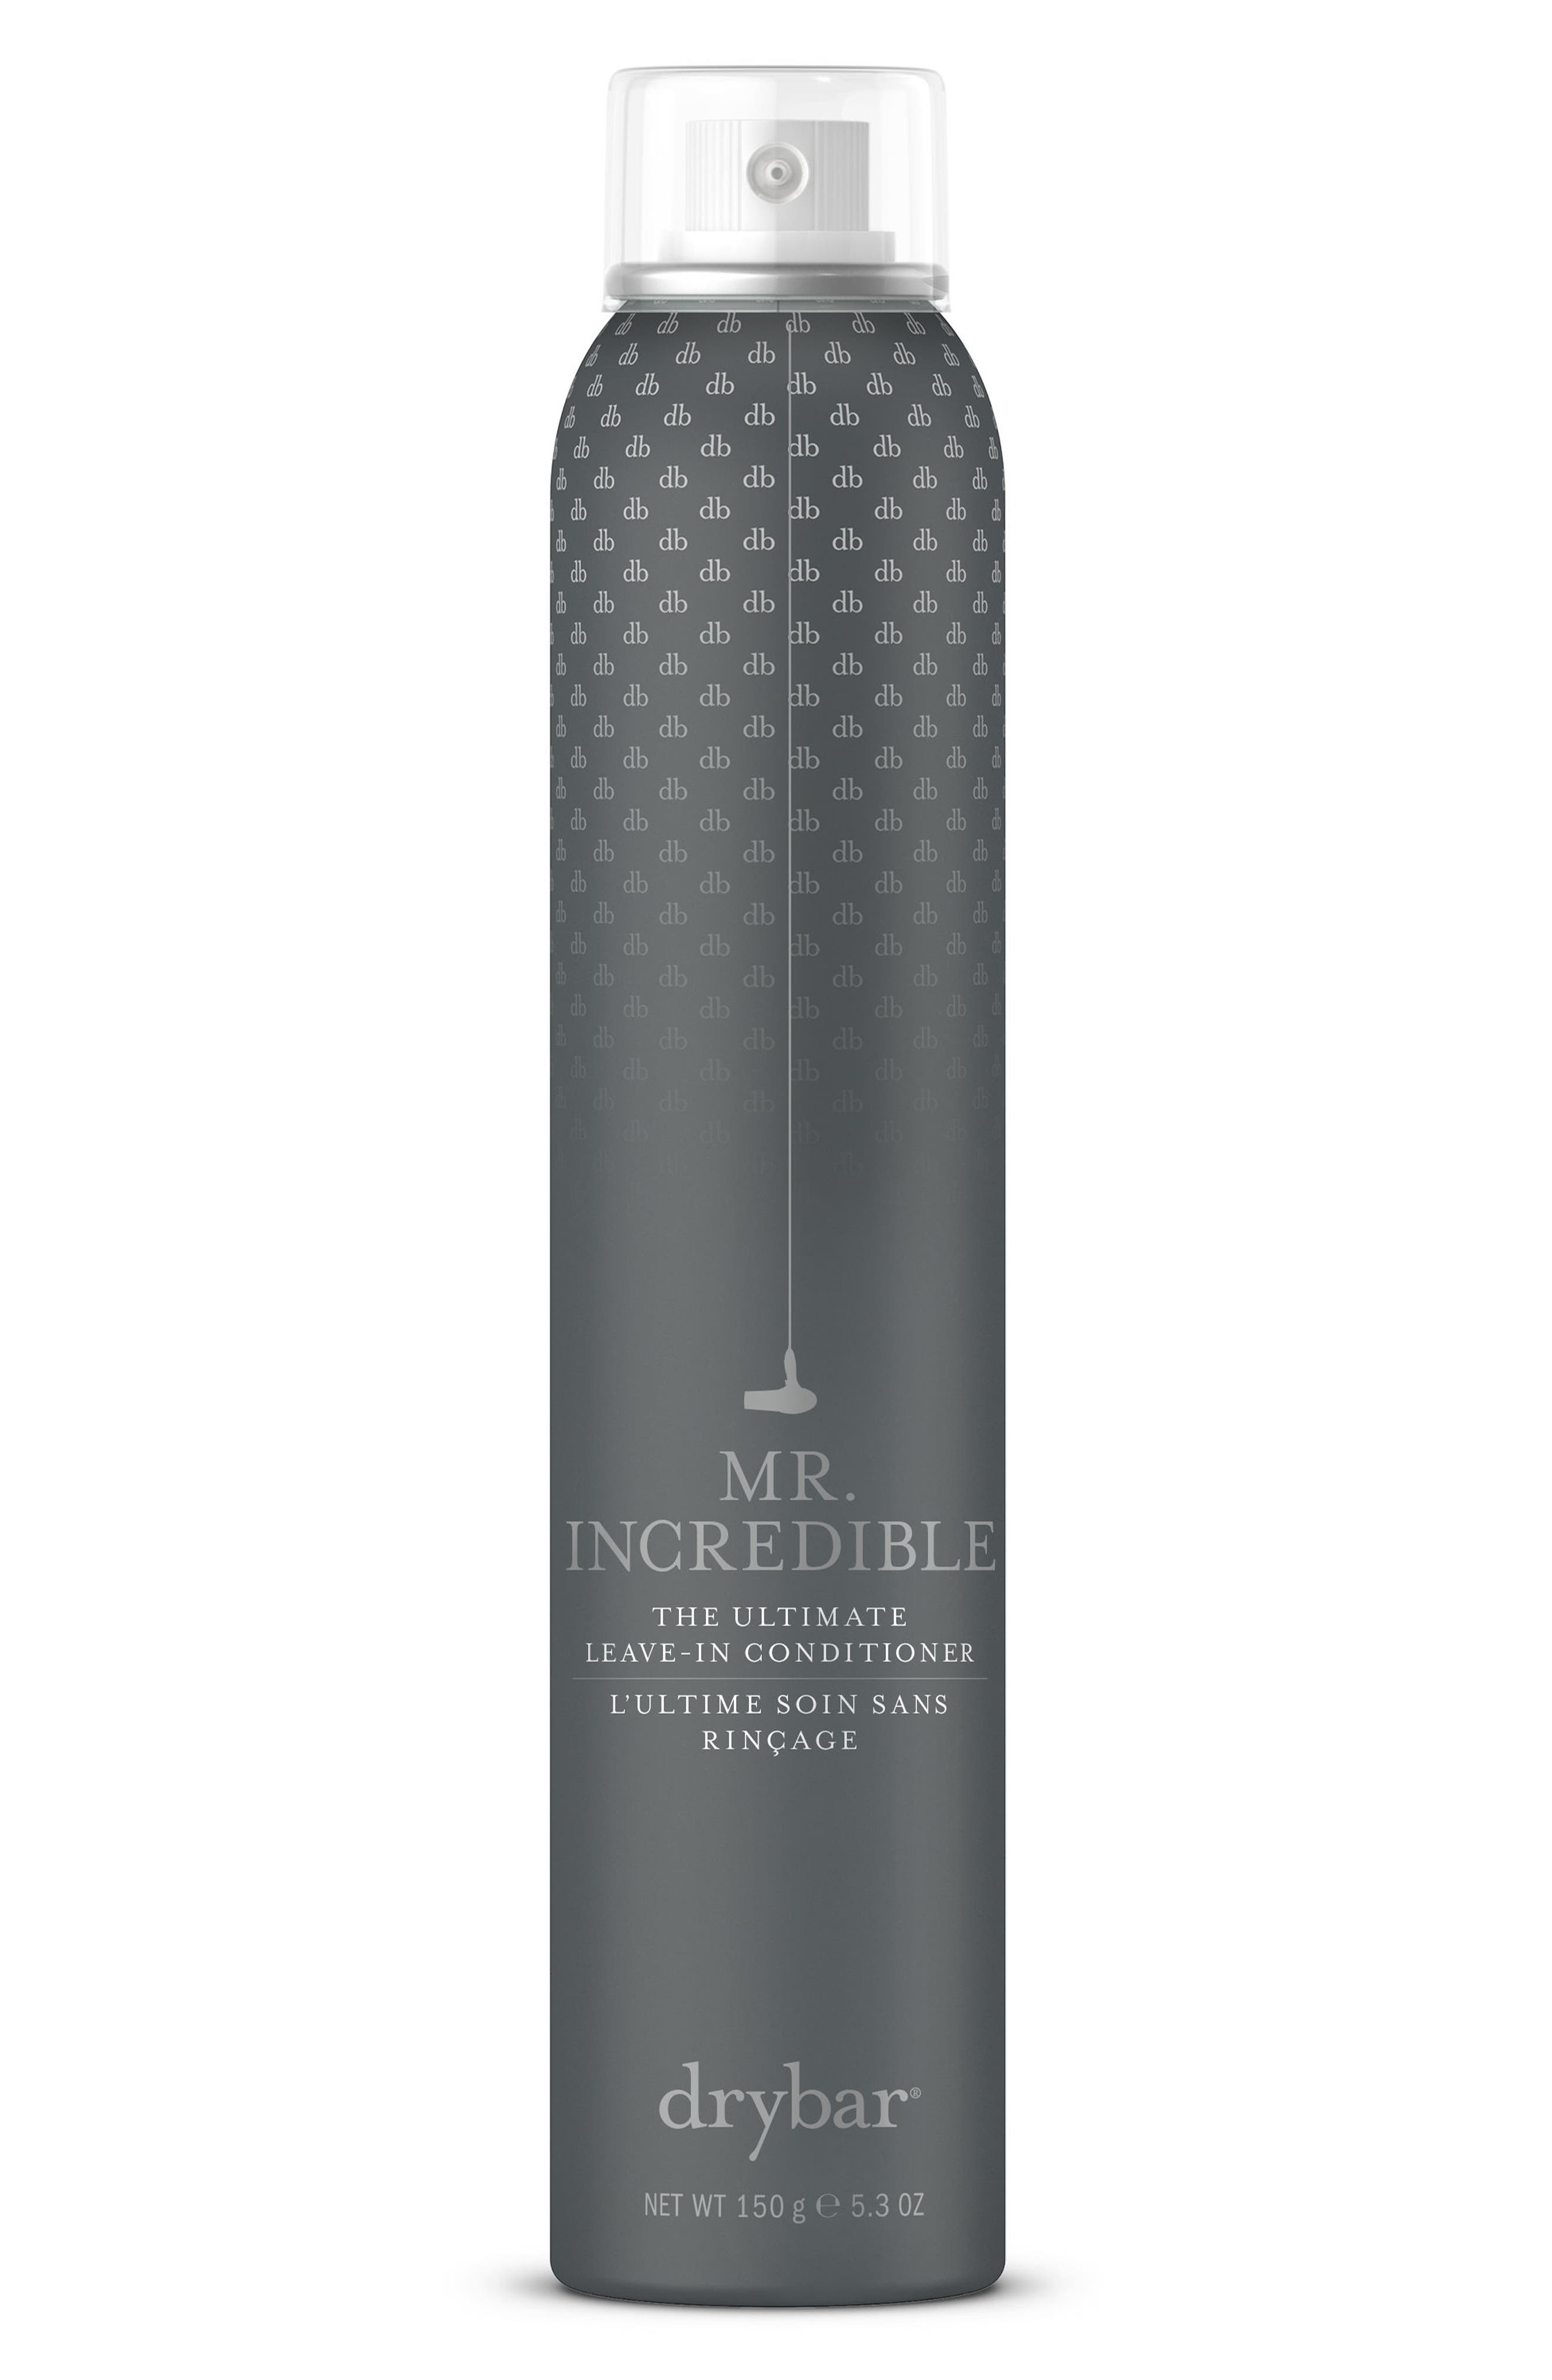 DRYBAR,                             Mr. Incredible Ultimate Leave-In Conditioner,                             Main thumbnail 1, color,                             000